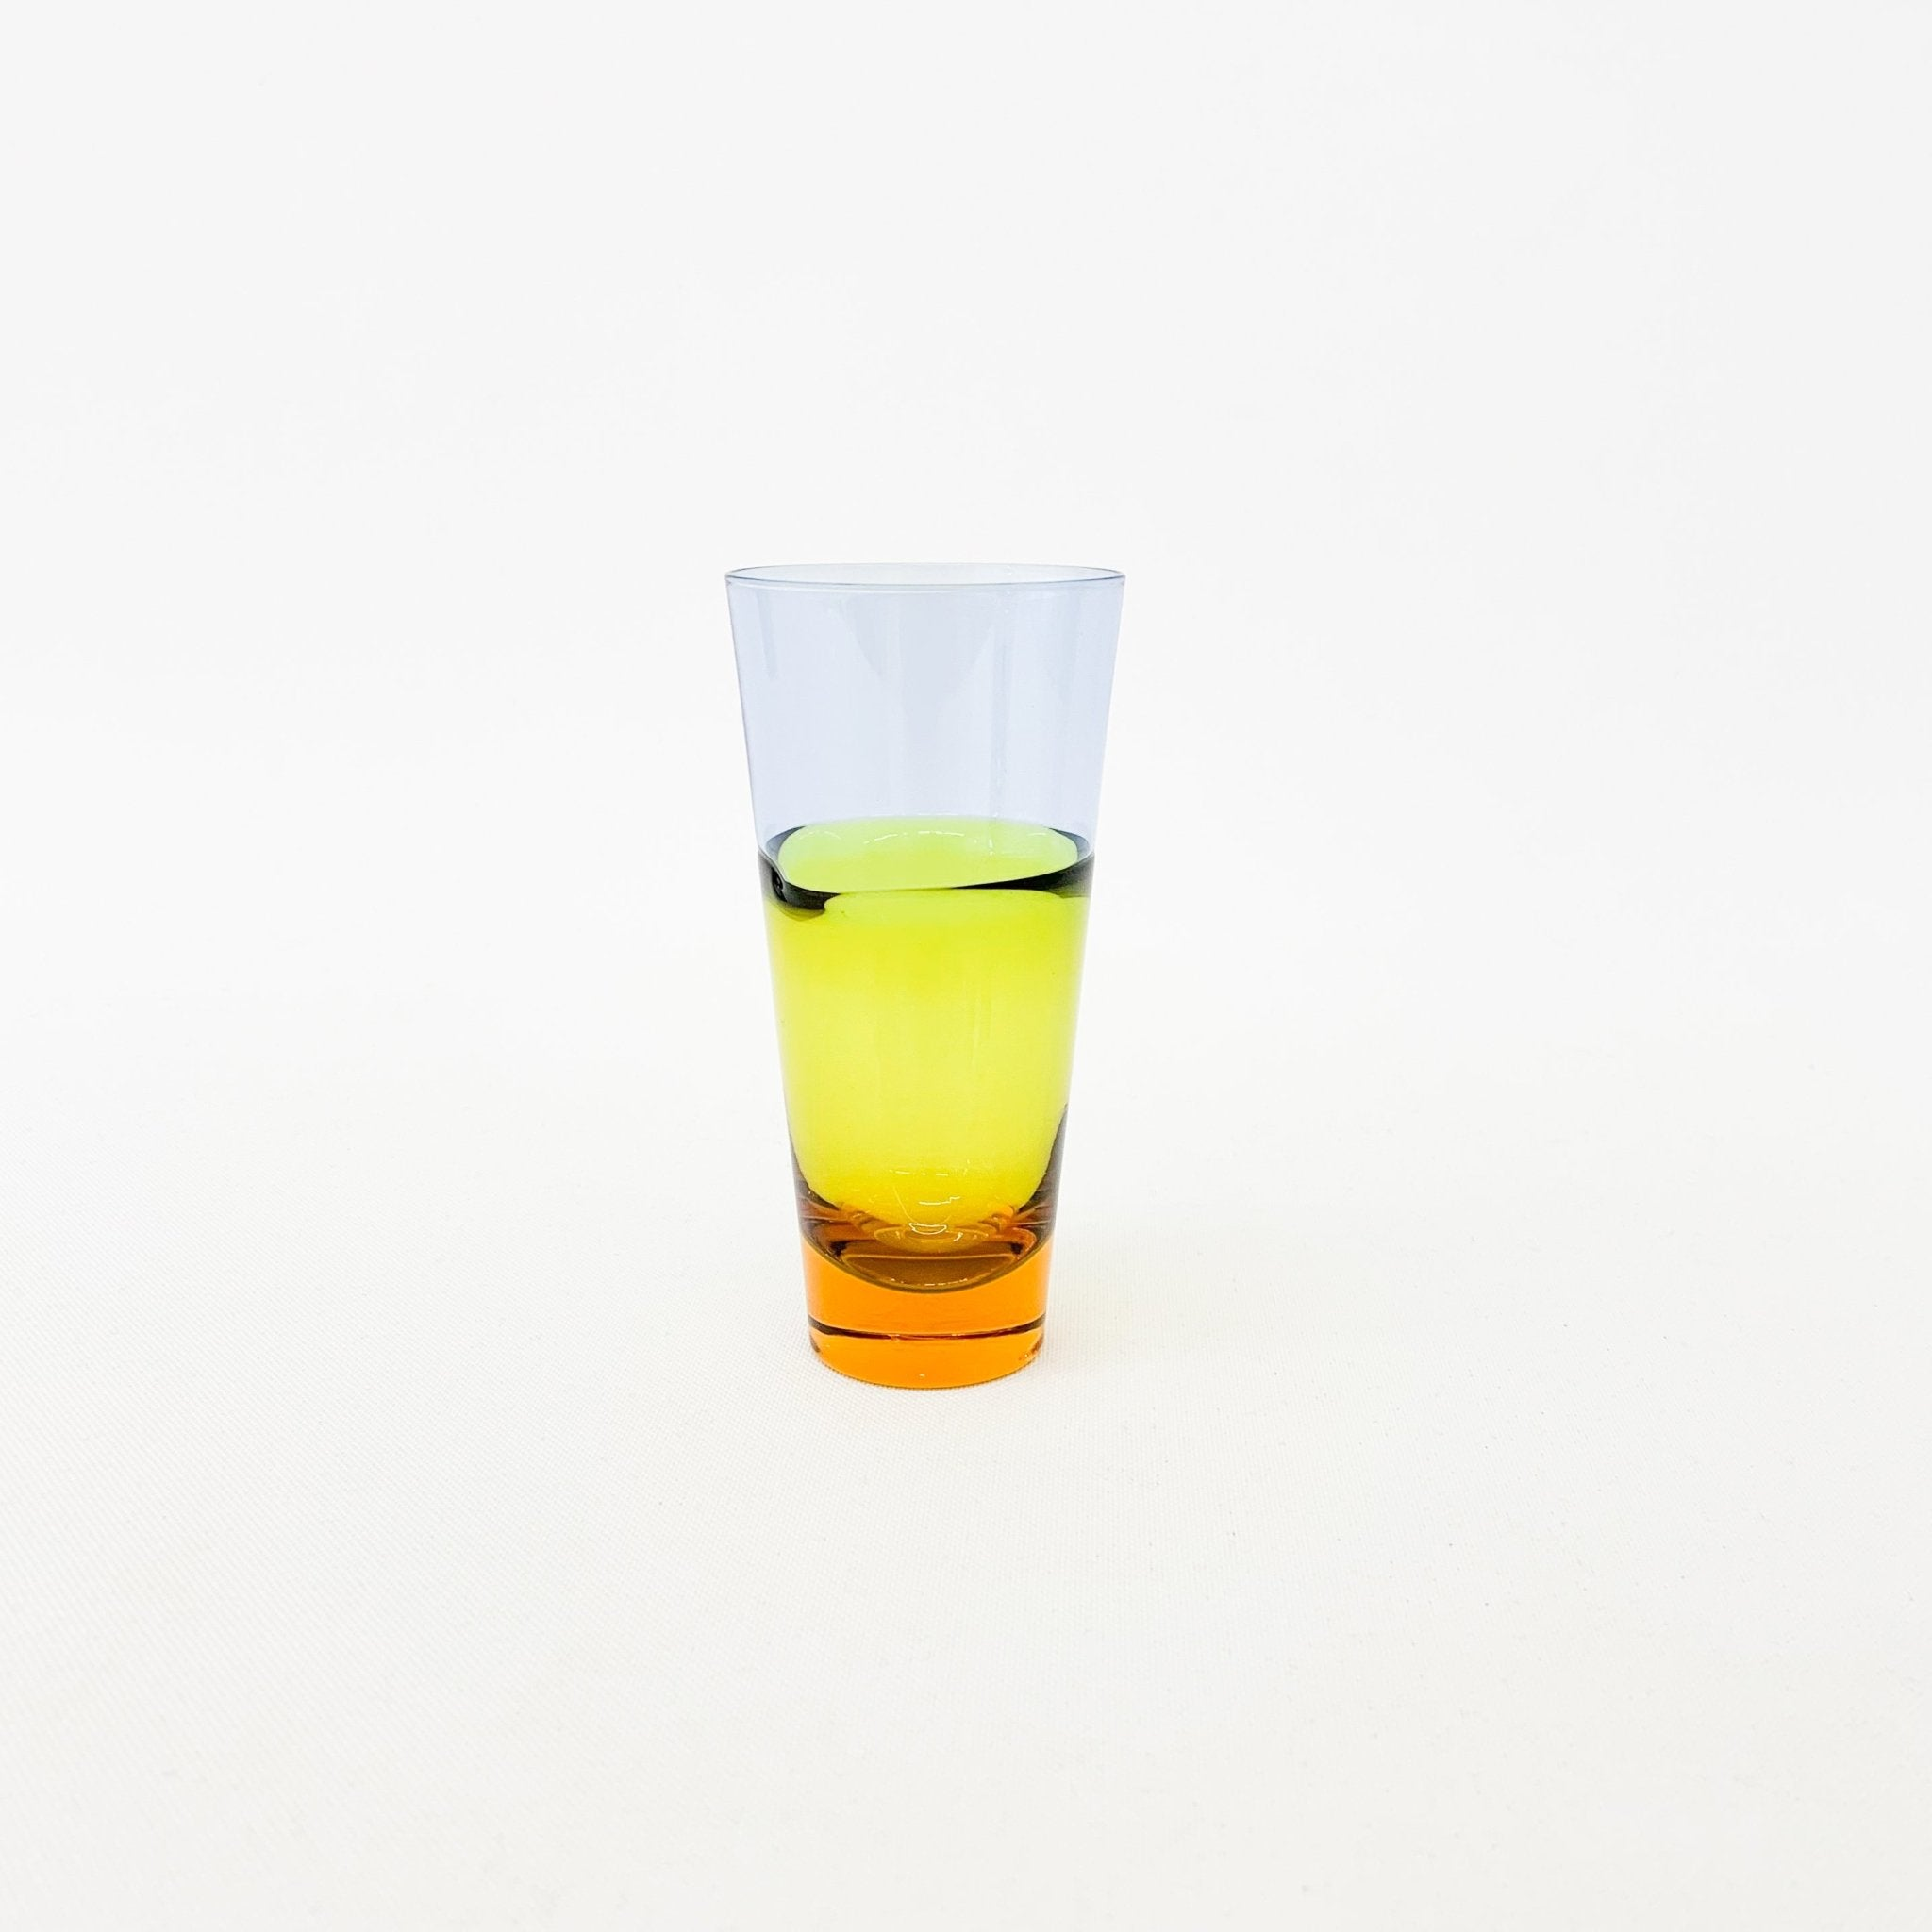 Sugahara Duo Blue/Yellow Old Fashion, Tumbler - tortoise general store